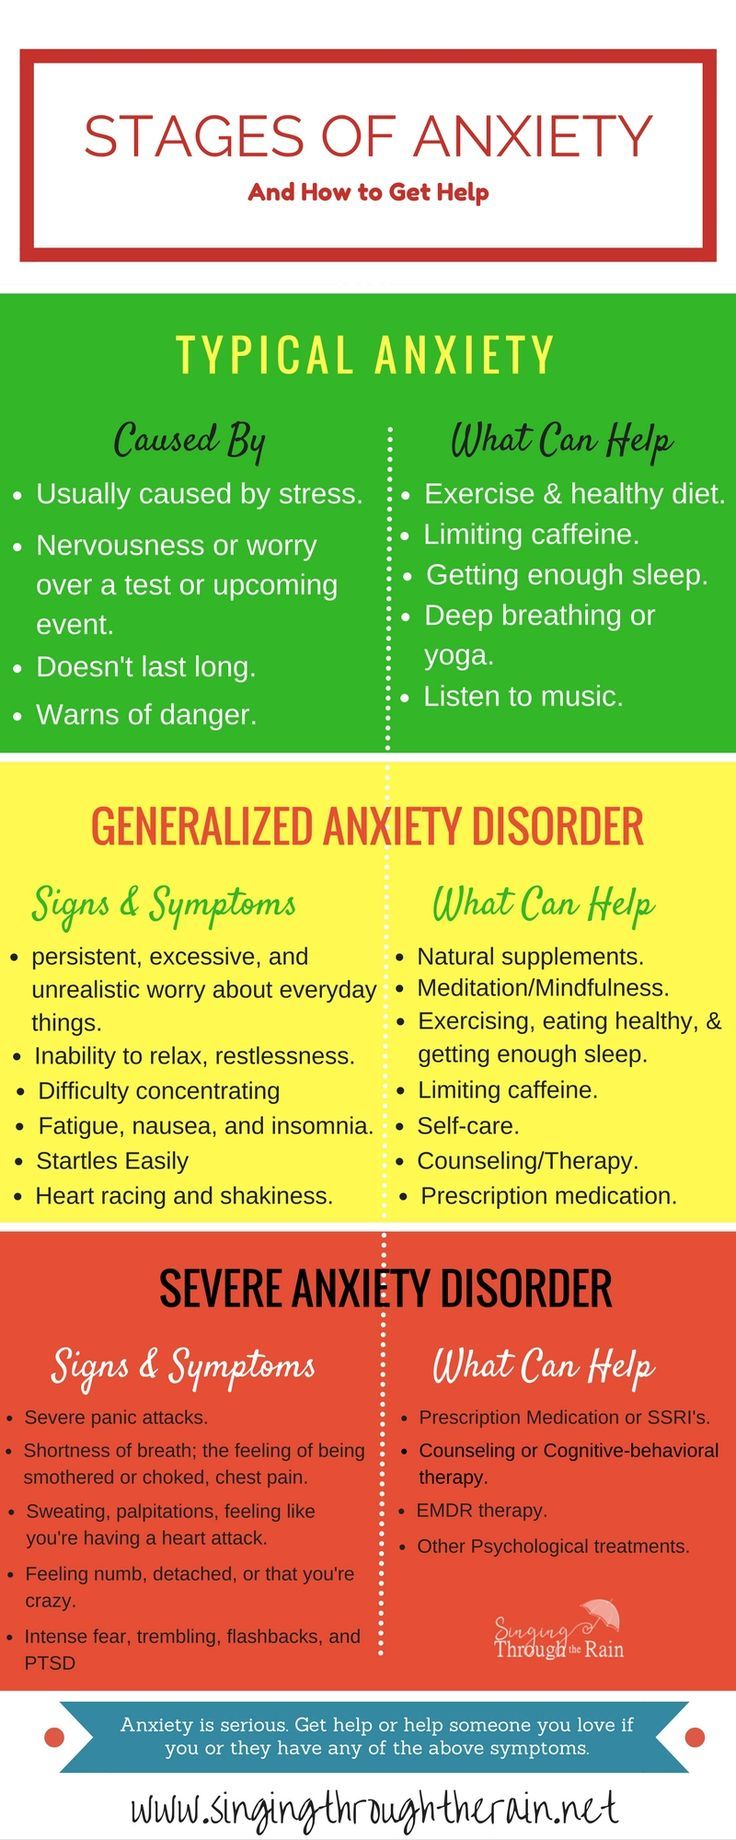 The stages of anxiety from typical to severe and what can help.